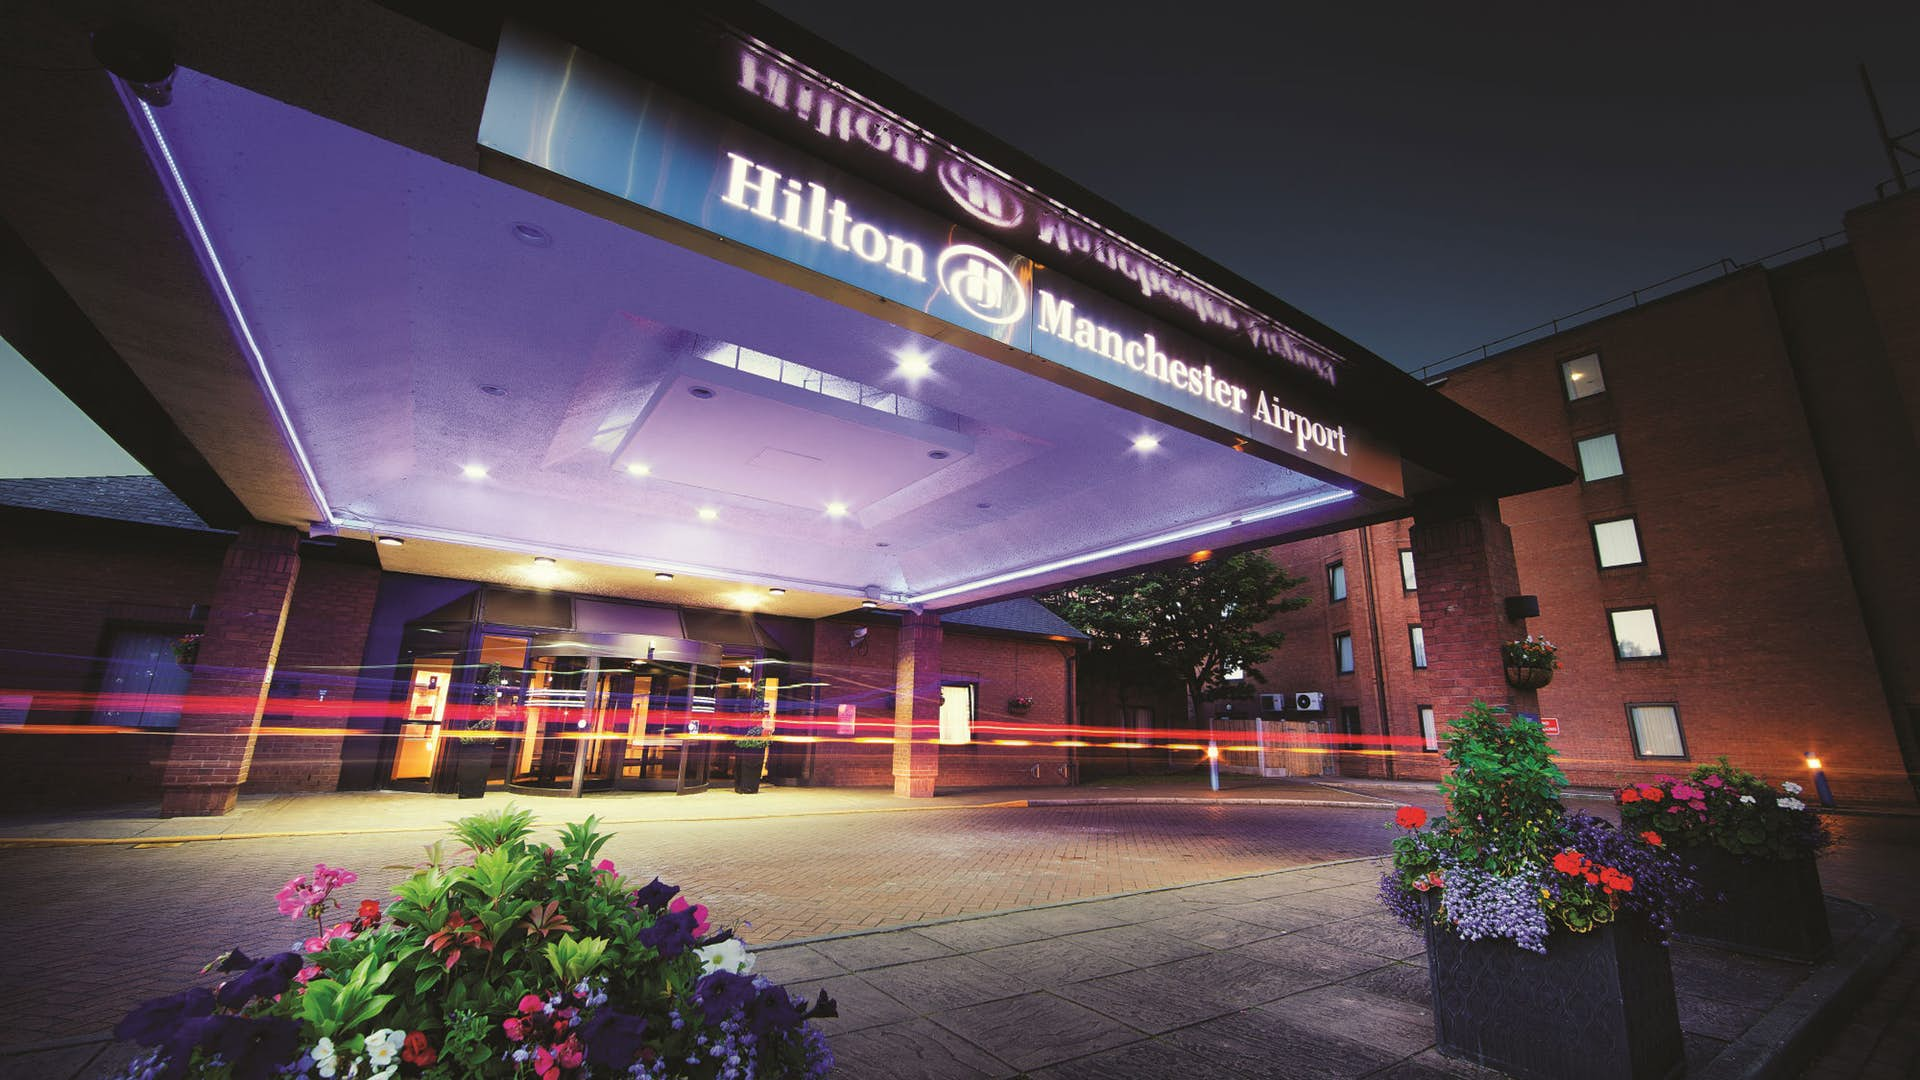 Front Office Supervisor - Hilton Manchester Airport